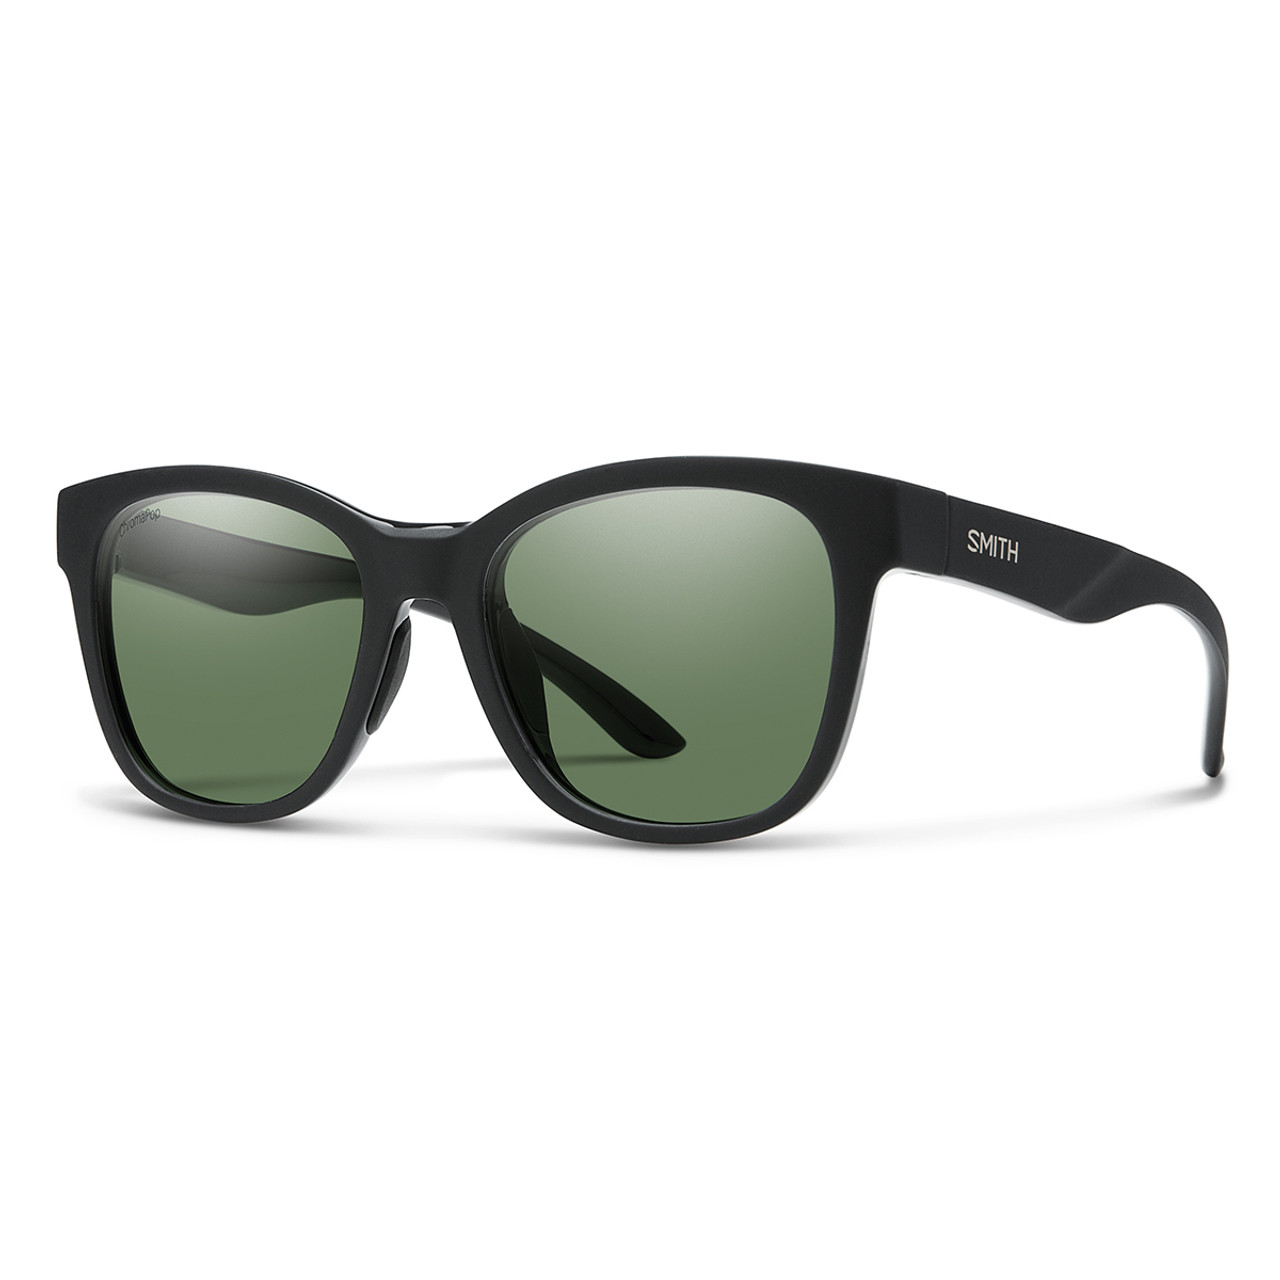 9d5111ea44 Caper - Matte Black - ChromaPop Polarized Gray Green - Val Surf